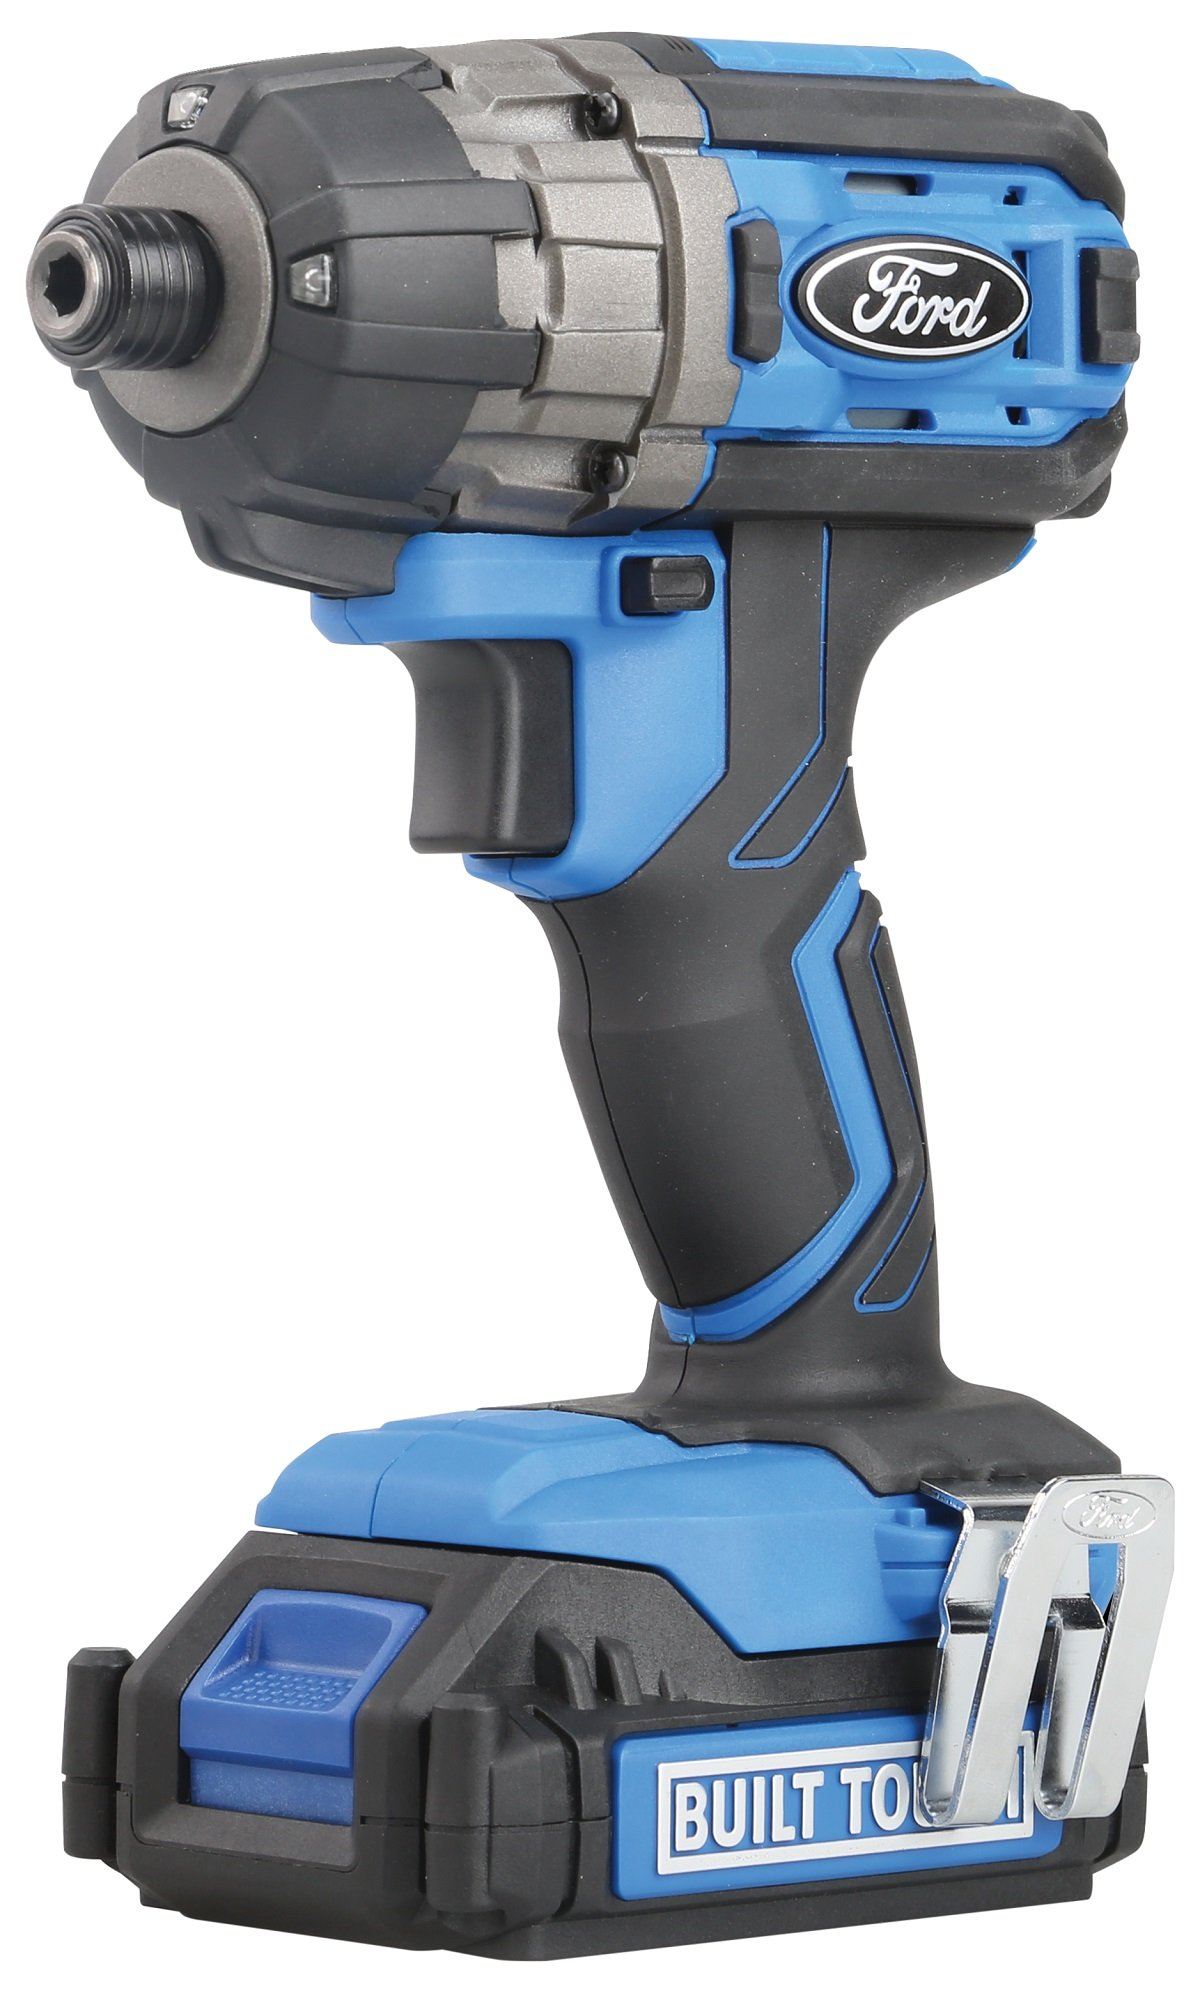 Ford Tools FMCF18-03 18V Cordless Impact Driver, 1 Pack